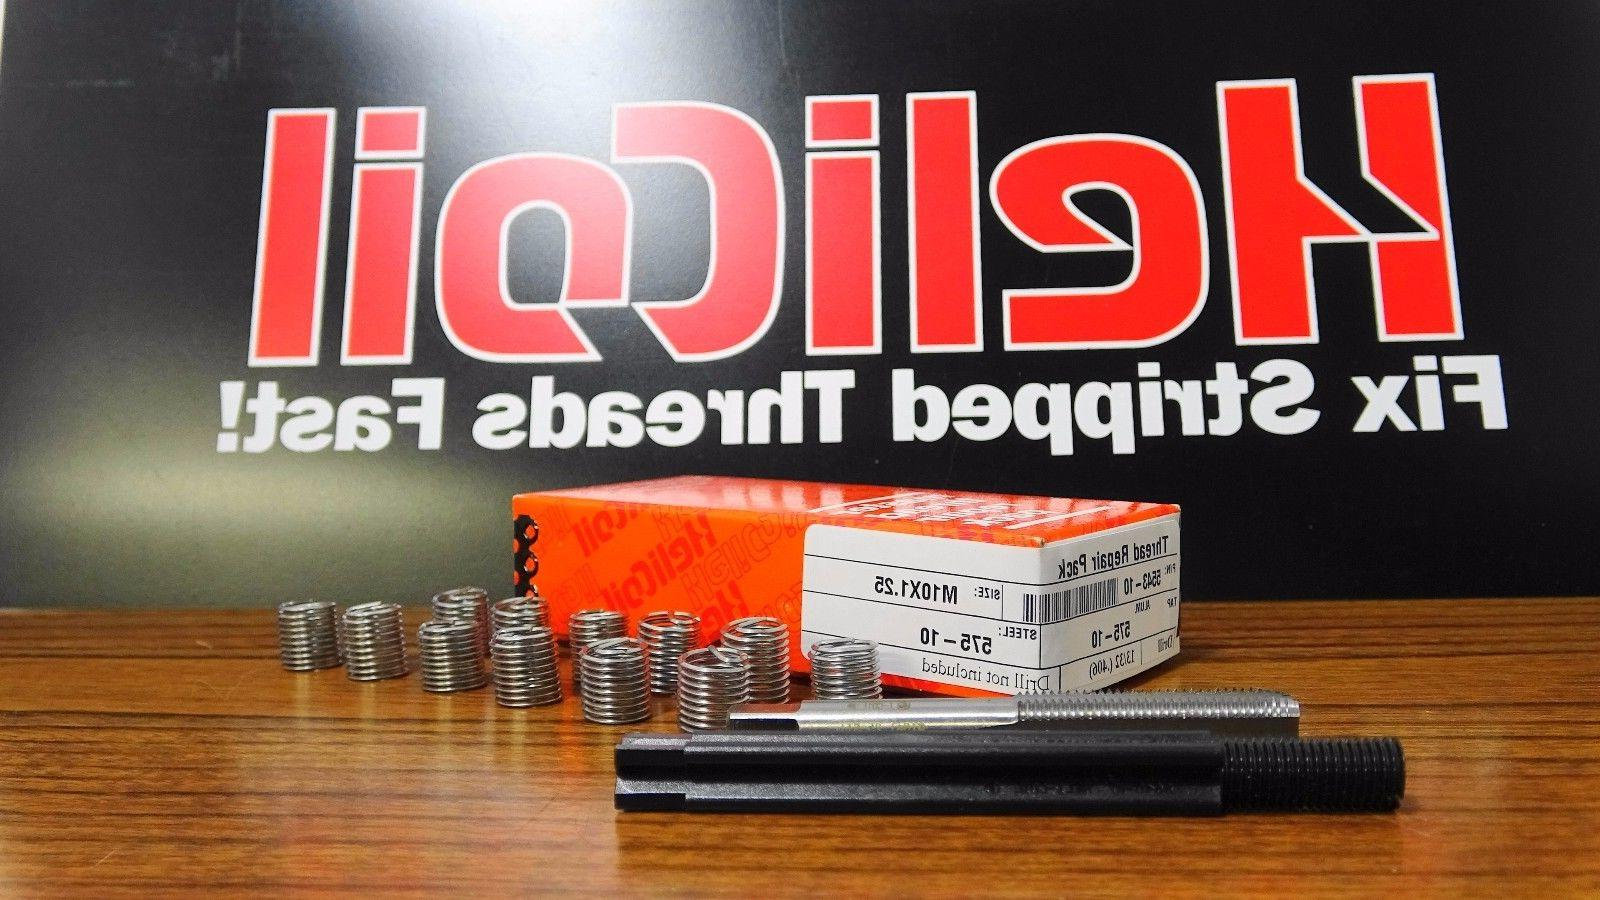 Helicoil Repair M10 x 1.25 15. With 12 Stainless